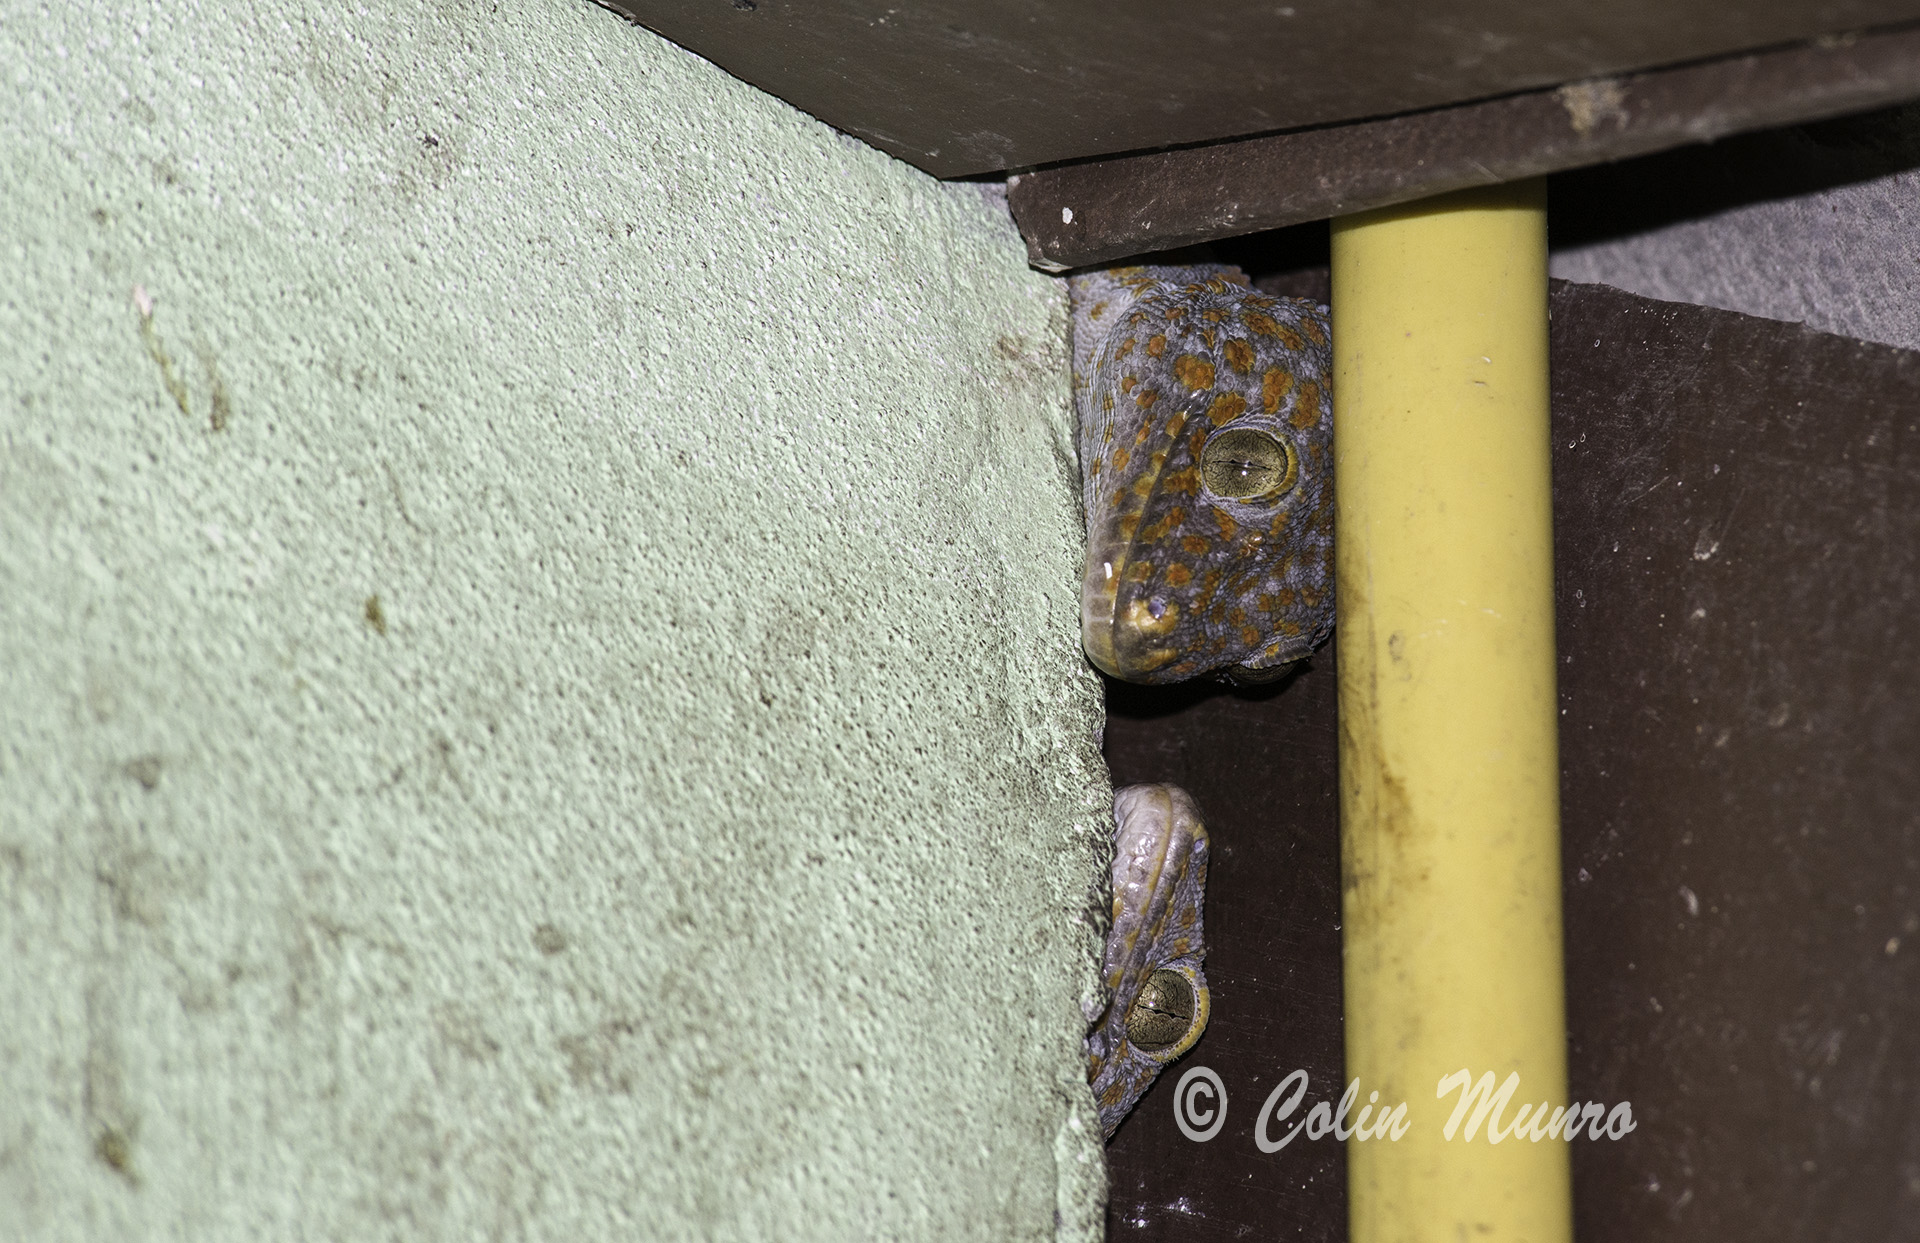 A pair of Tockay geckos watch and wait for the sun to set before leaving the safety of their shelter under a house roof. Phuket, Thailand. © Colin Munro Images